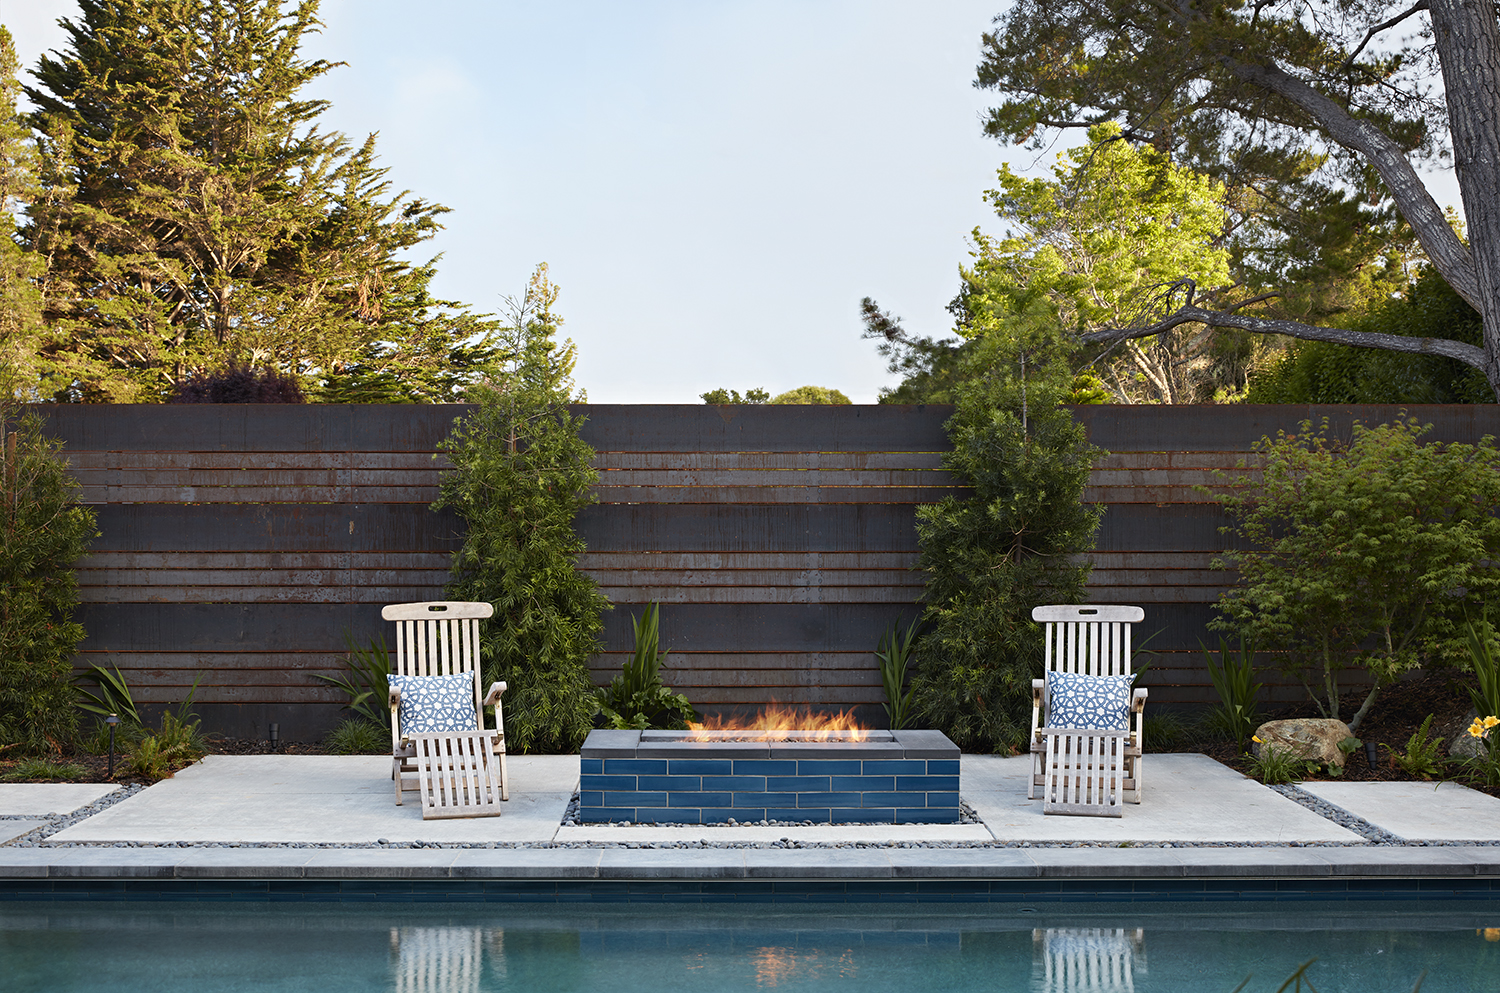 The blue-tiled is in front of a weathered zinc fence, for fire safety and textural interest.